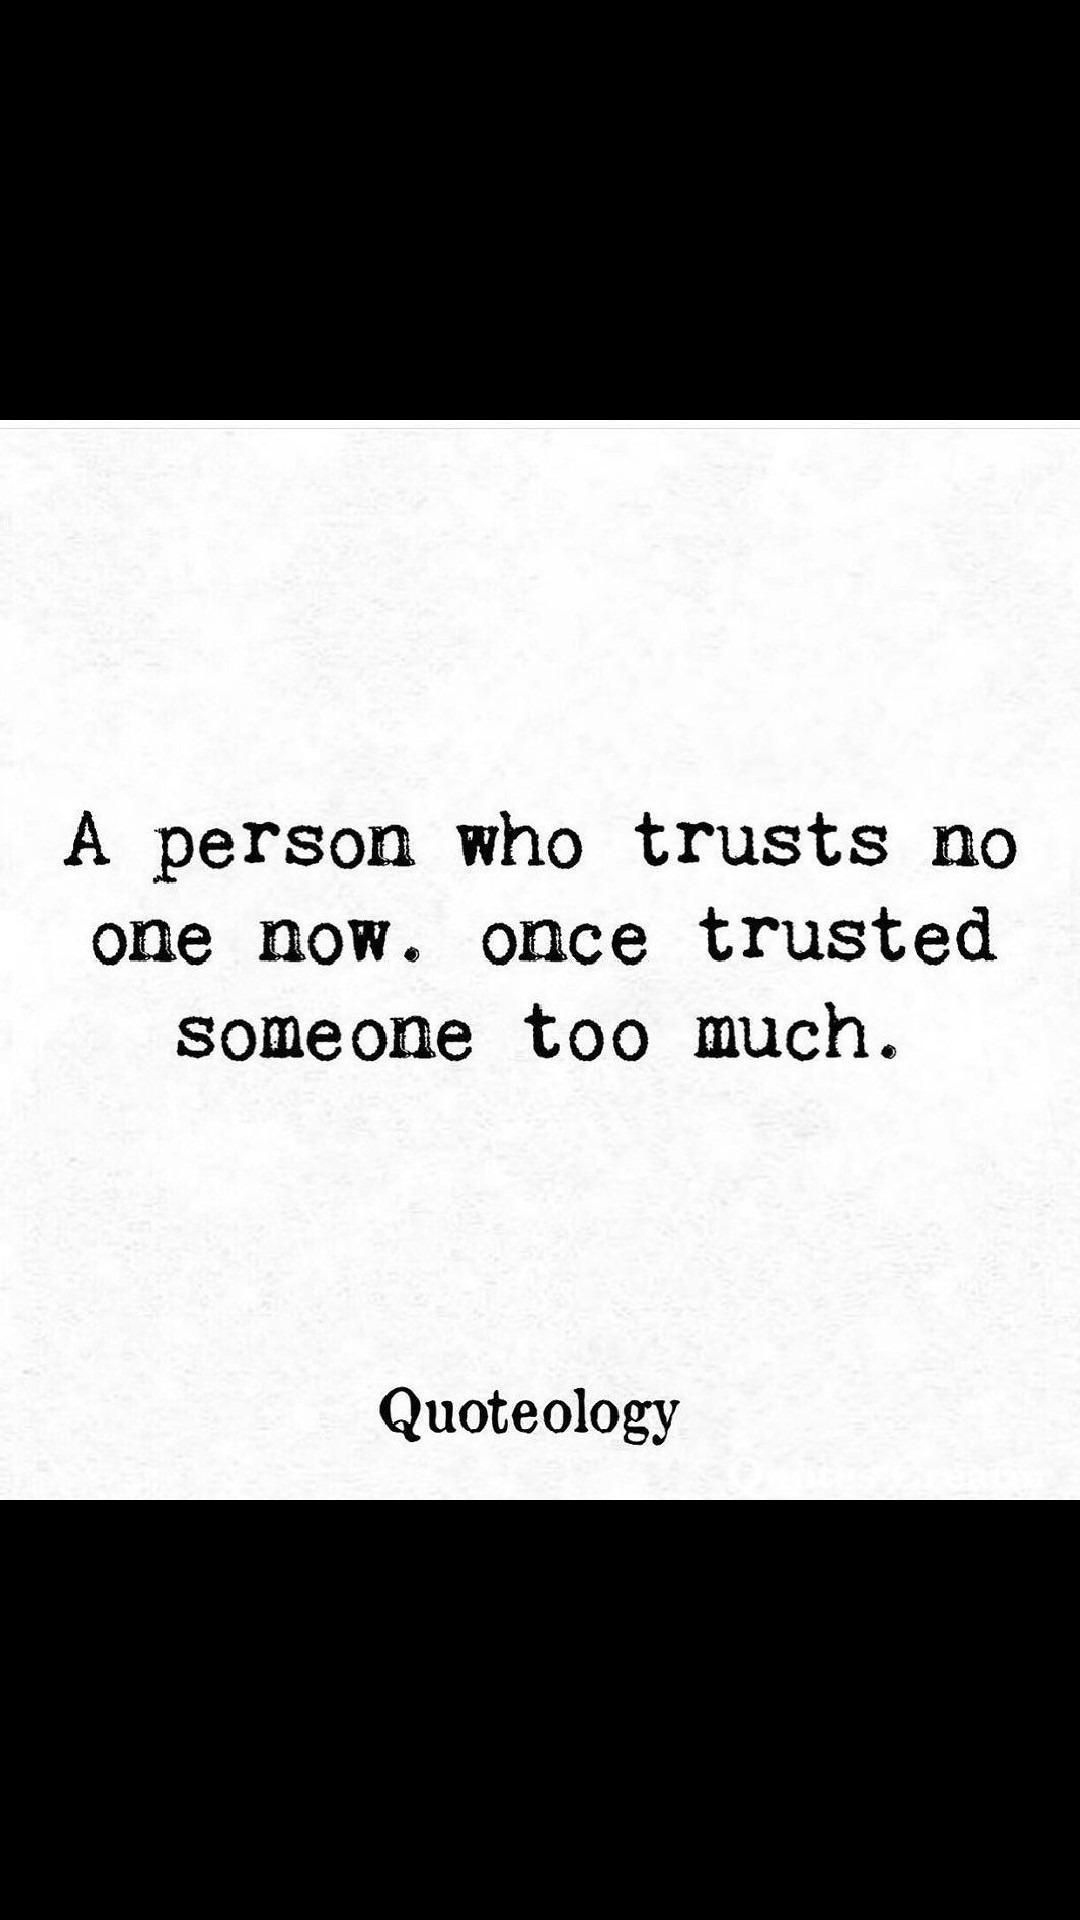 A person who trusts no one now